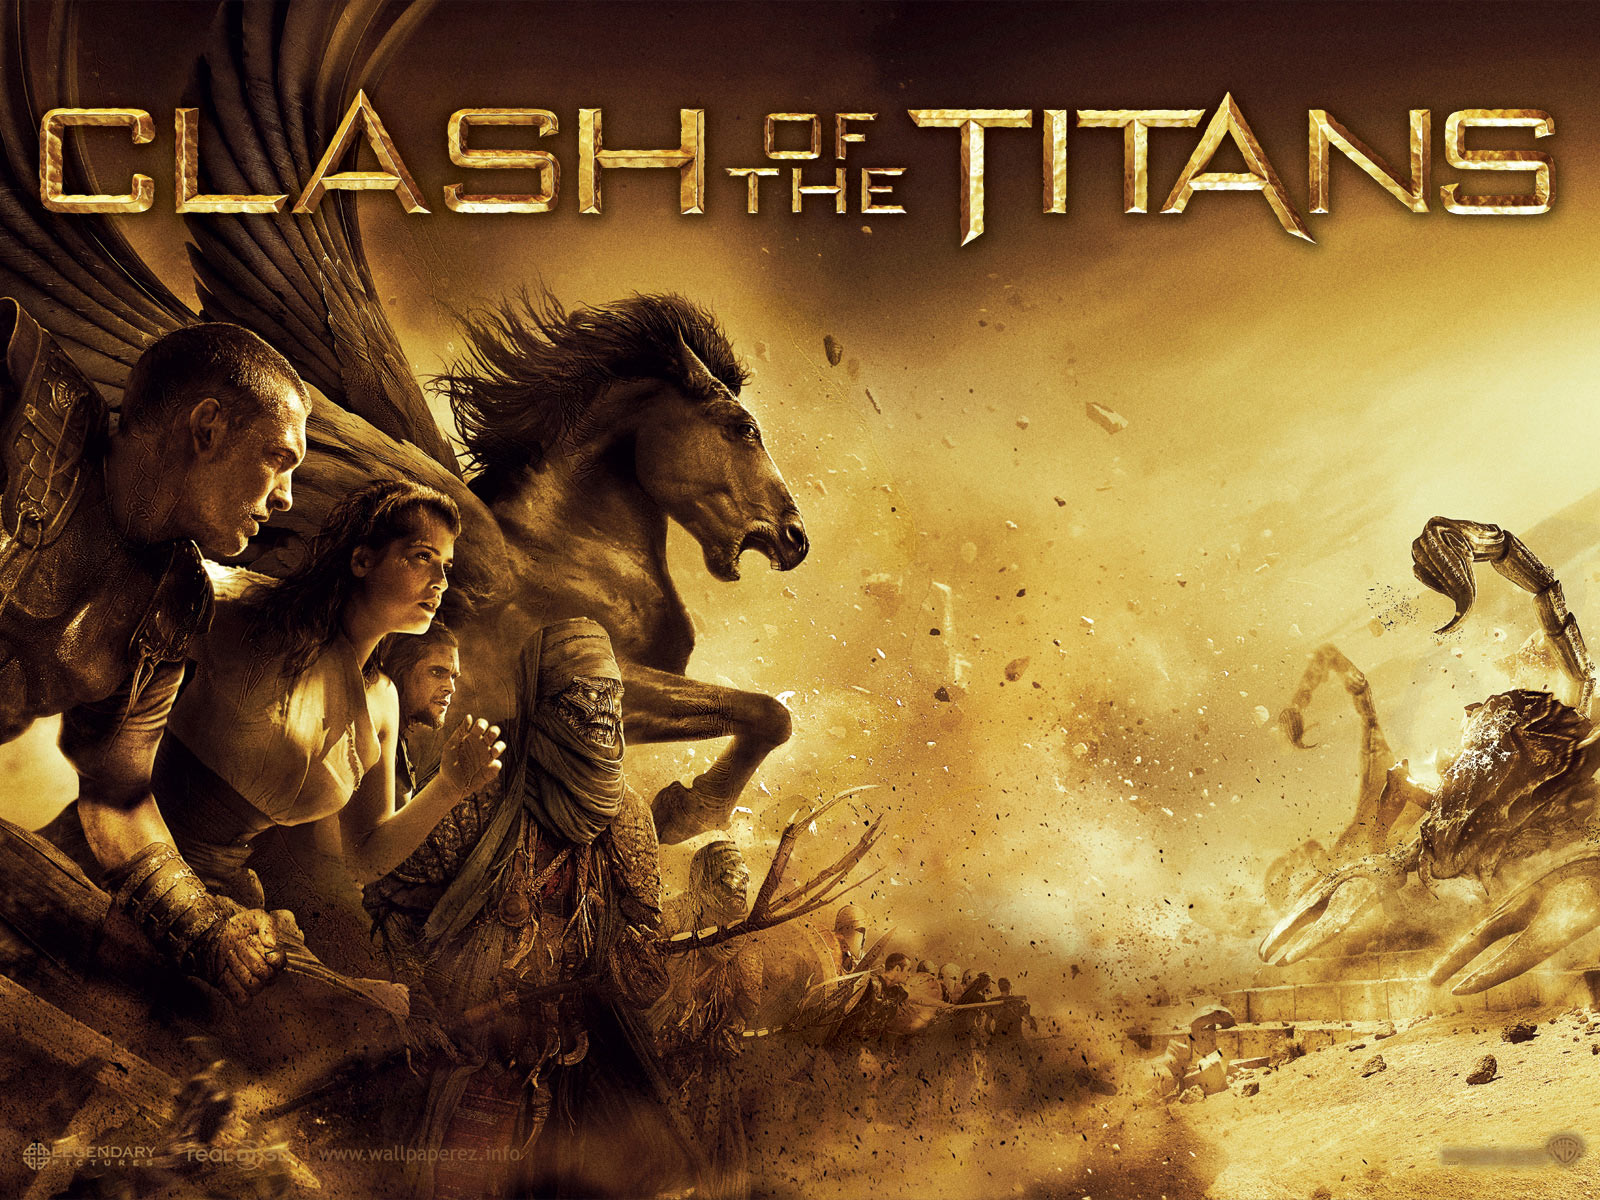 http://3.bp.blogspot.com/_sO_FX2iu0XU/S9Dh1zLN8EI/AAAAAAAAGyY/vUZ83JoWhDU/s1600/Clash-of-the-Titans-wallpaper-2045.jpg